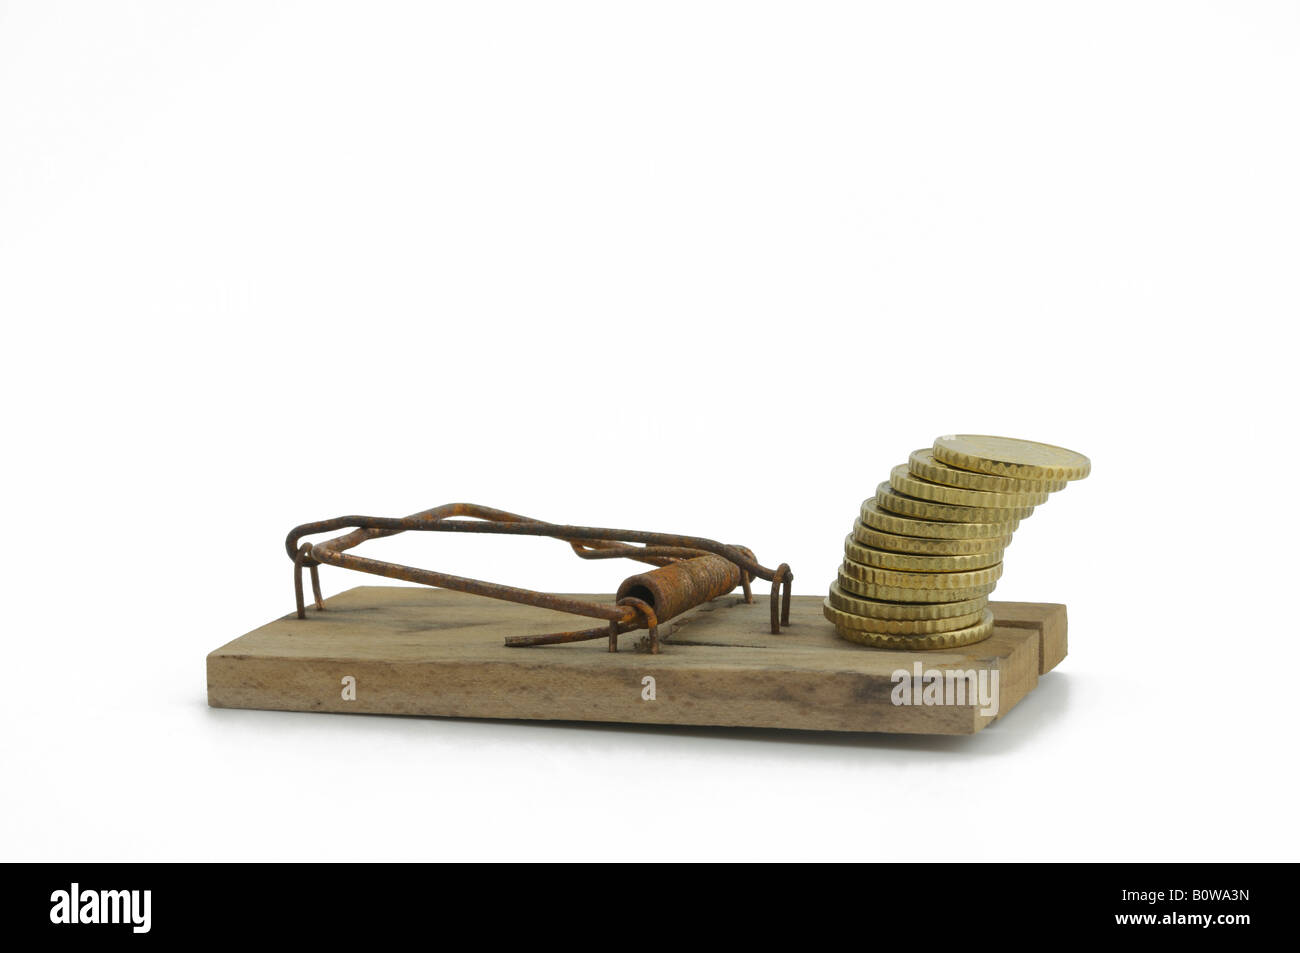 Set mousetrap with a stack of coins as bait - Stock Image